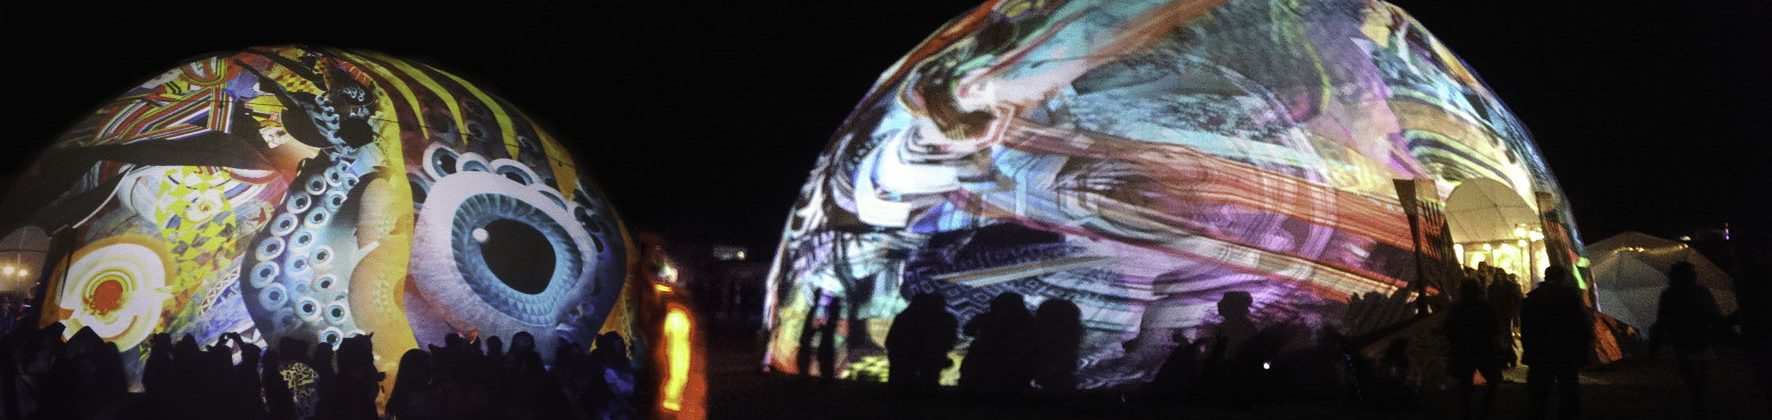 illumination pacific domes glow party awesome festival